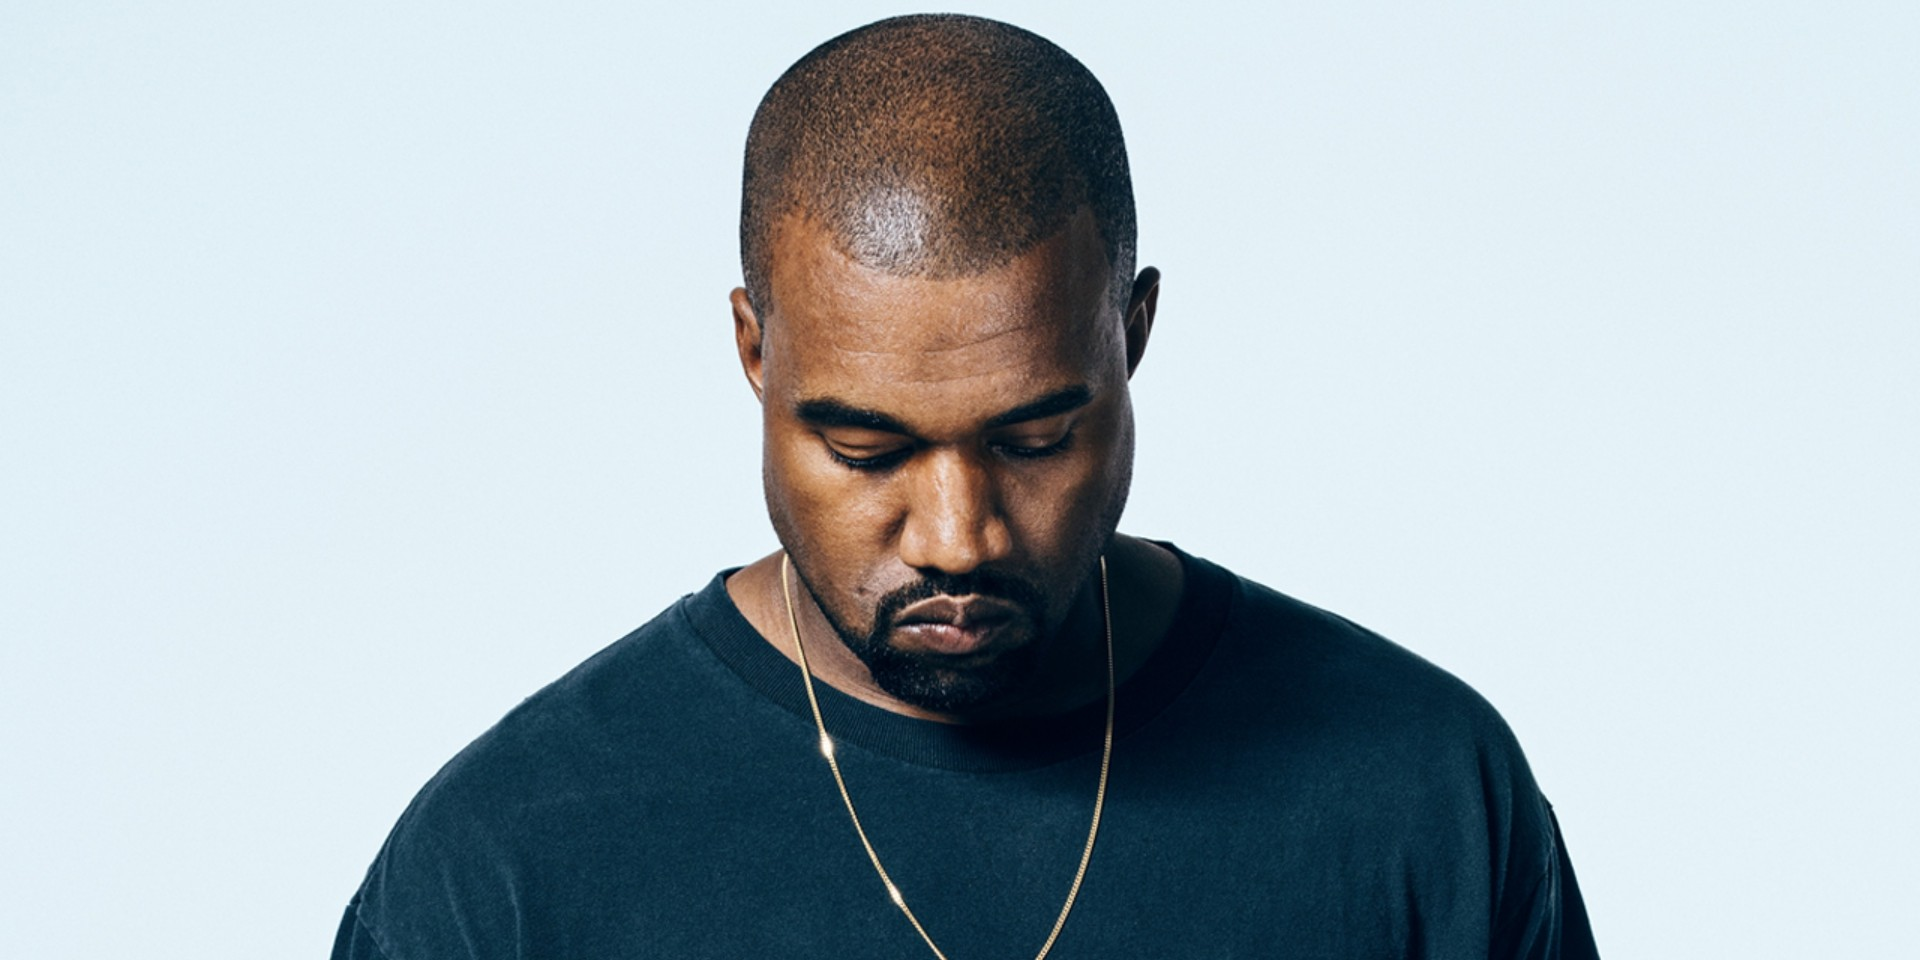 Kanye West's contract states that he can't retire from music